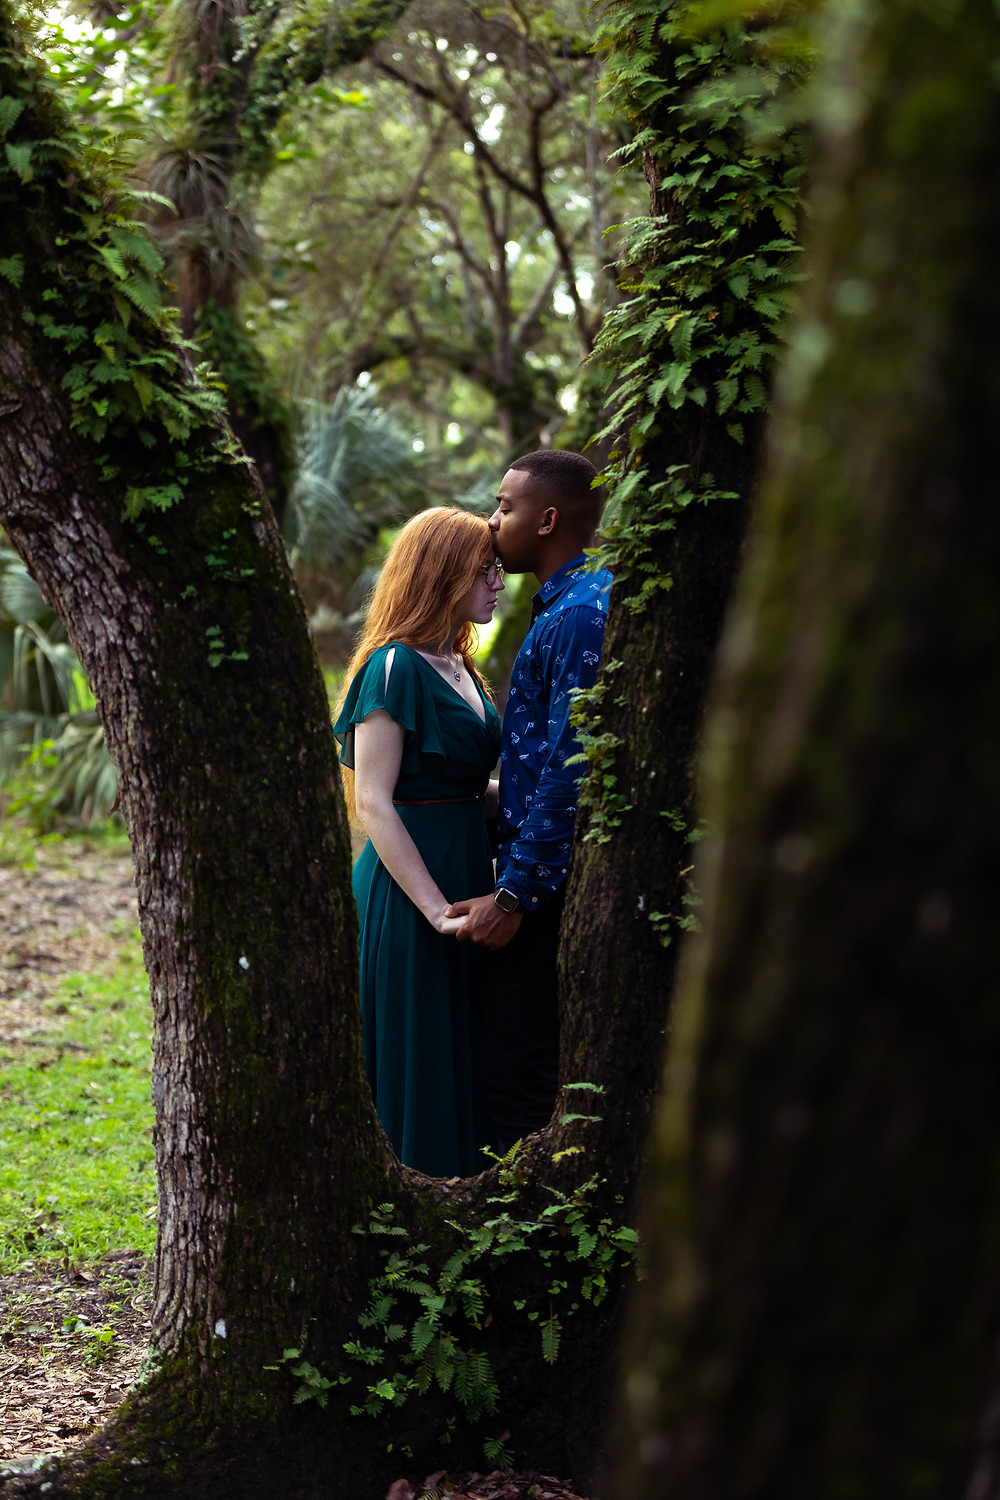 Miami wedding photographer captures image of husband kissing forehead of wife behind a tree in the forest.